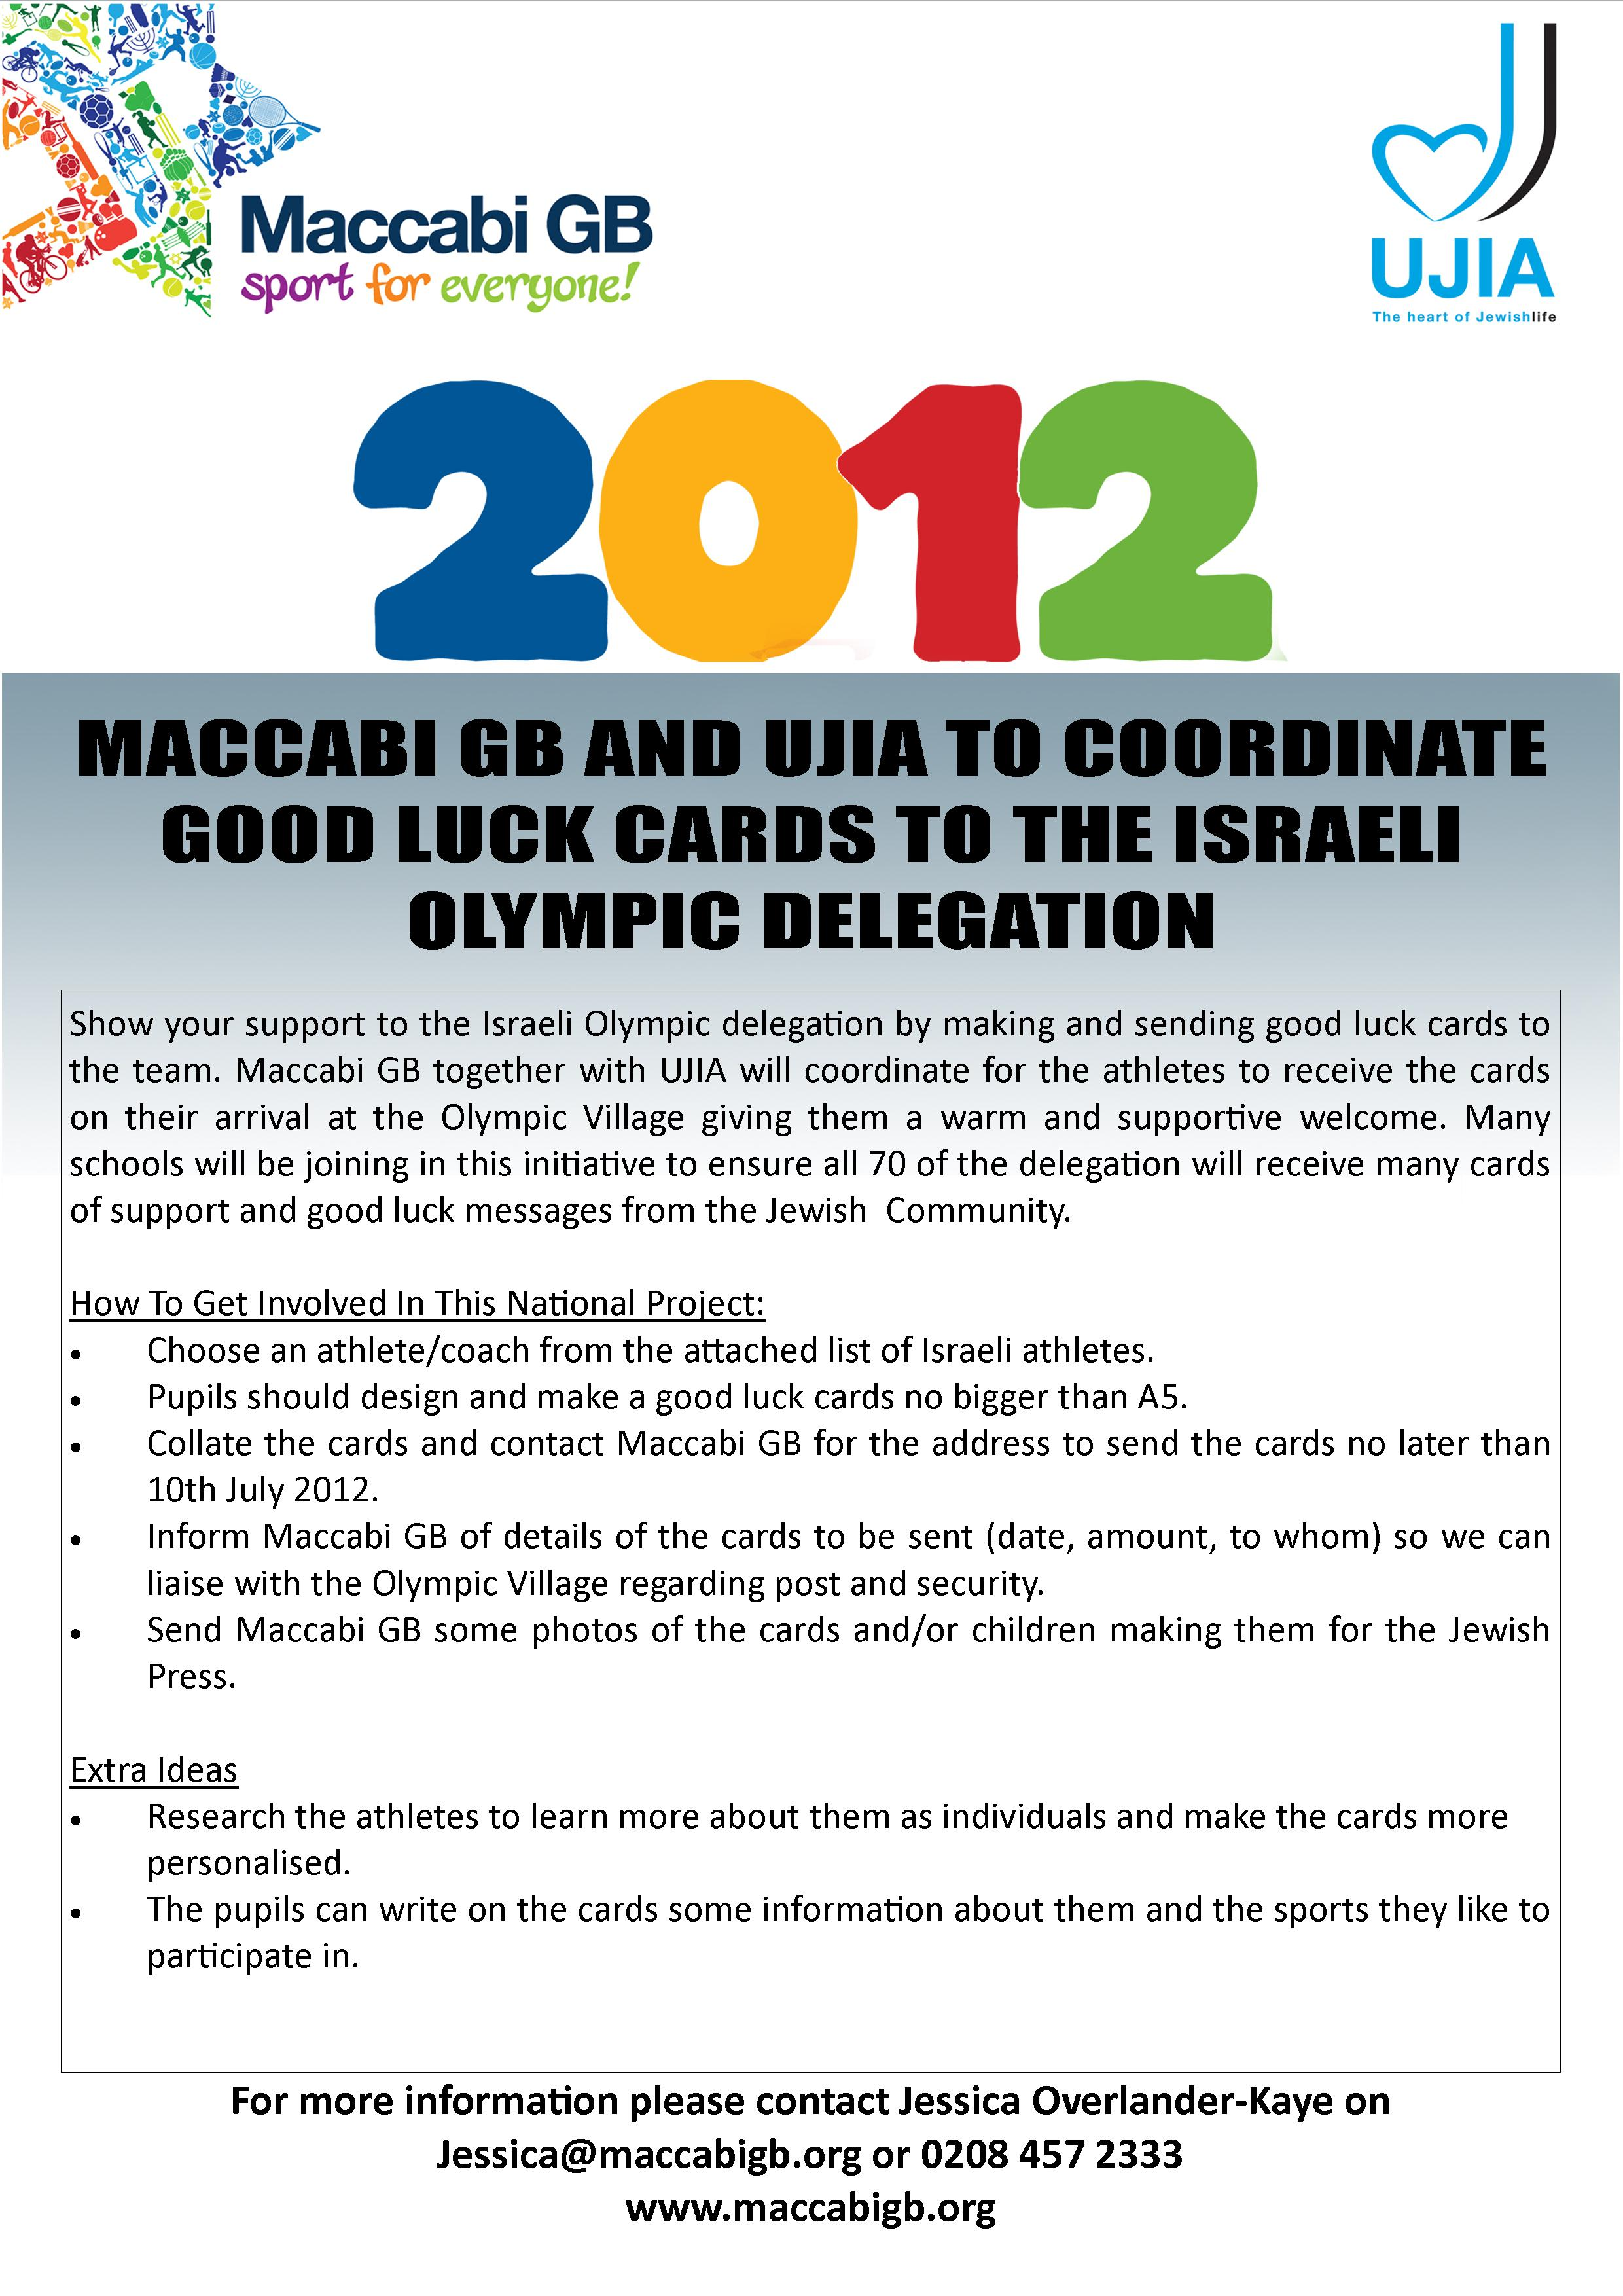 Send Your Good Luck Messages To The Israeli Olympic Athletes Click